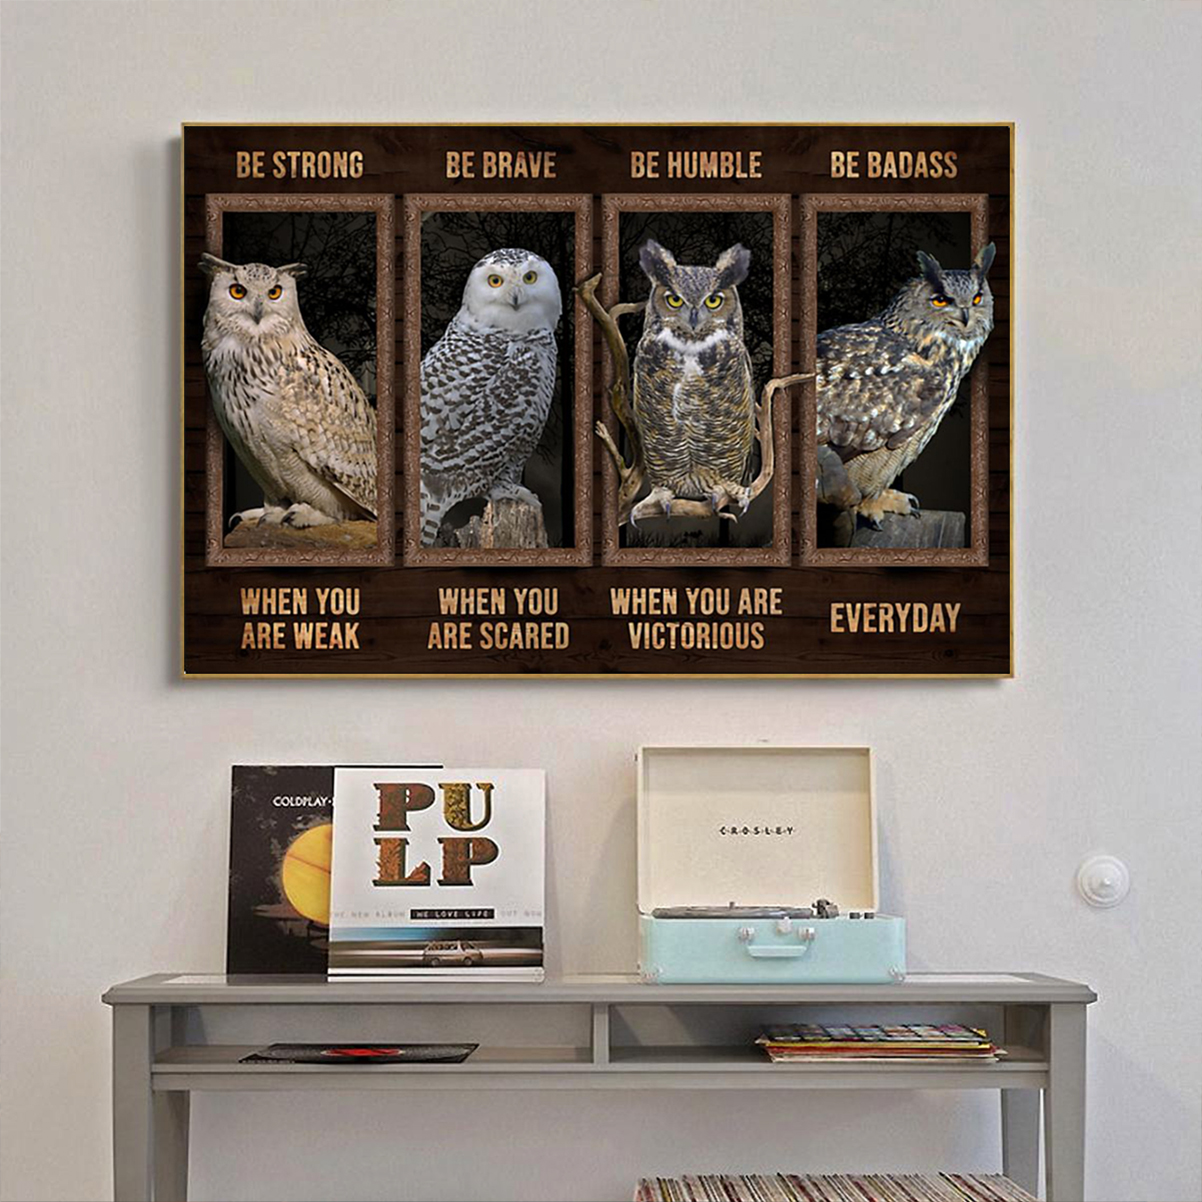 Owl be strong be brave be humble be badass poster A1